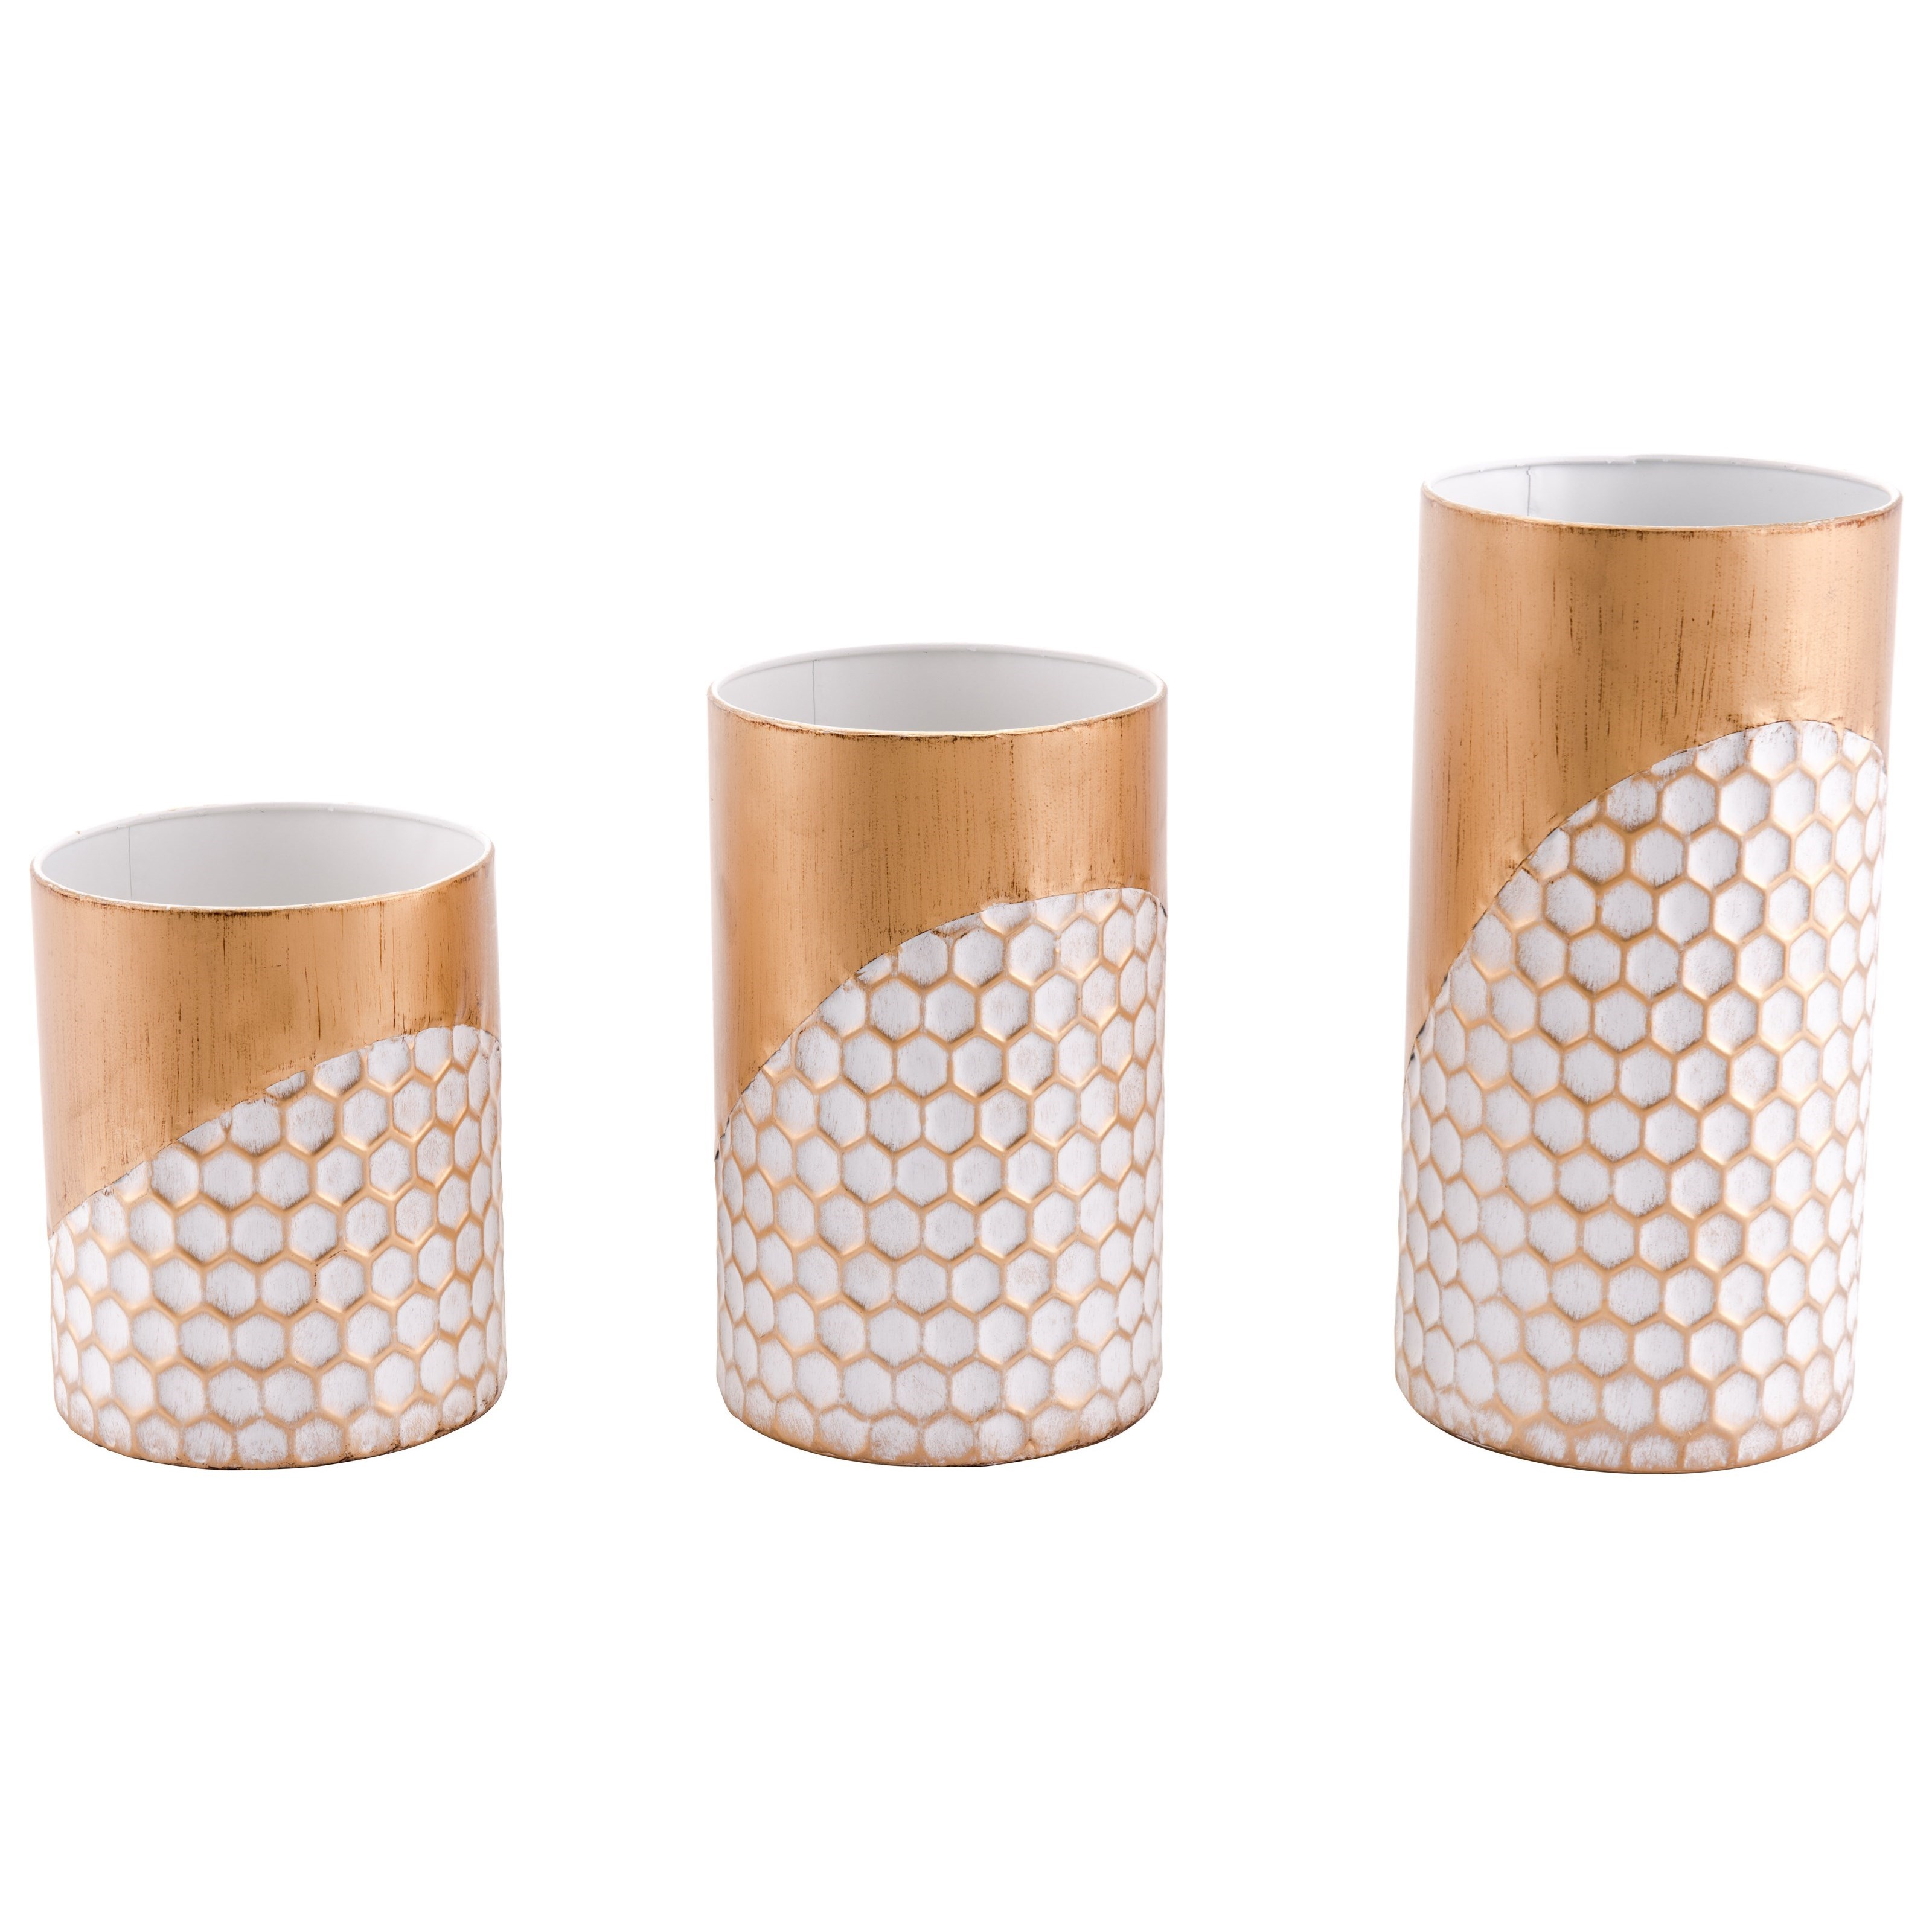 Zuo Candle Holders Honeycomb Set of 3 Candle Holders - Item Number: A10634